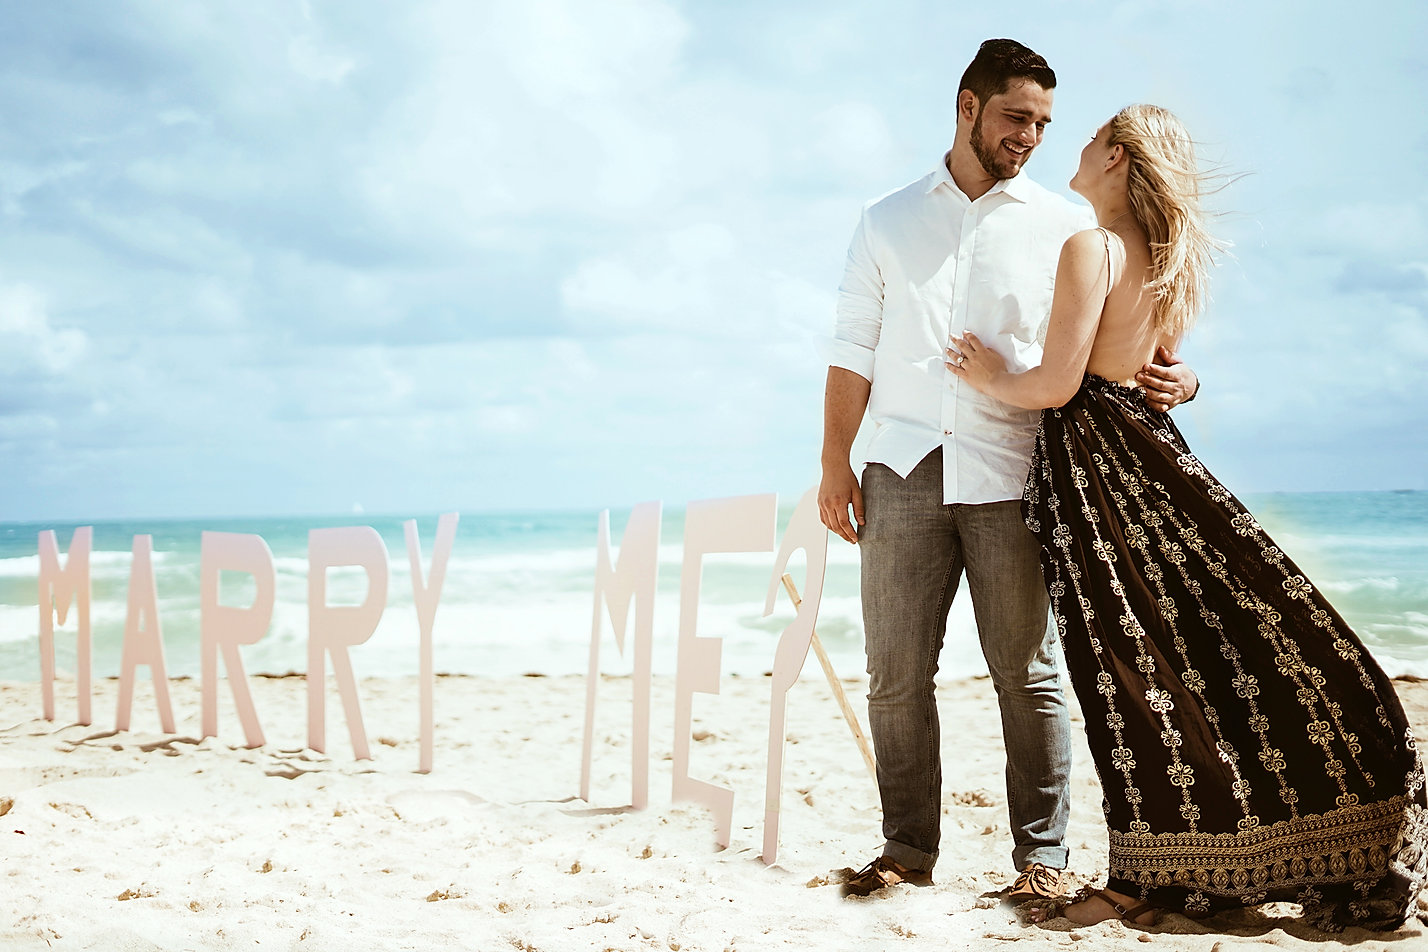 proposal-beach-dream-wedding-.jpg